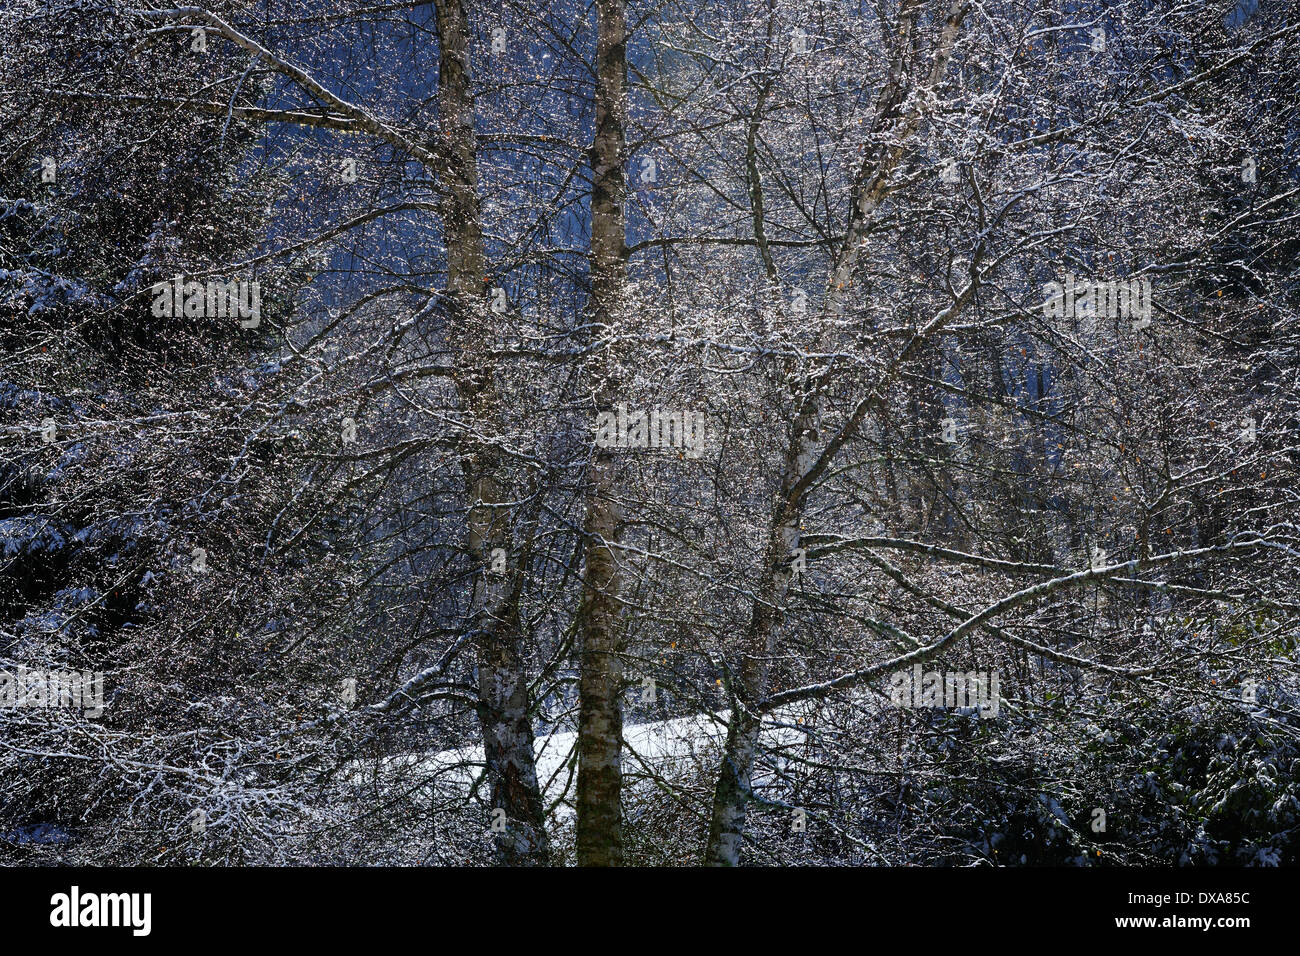 Forest in winter. - Stock Image